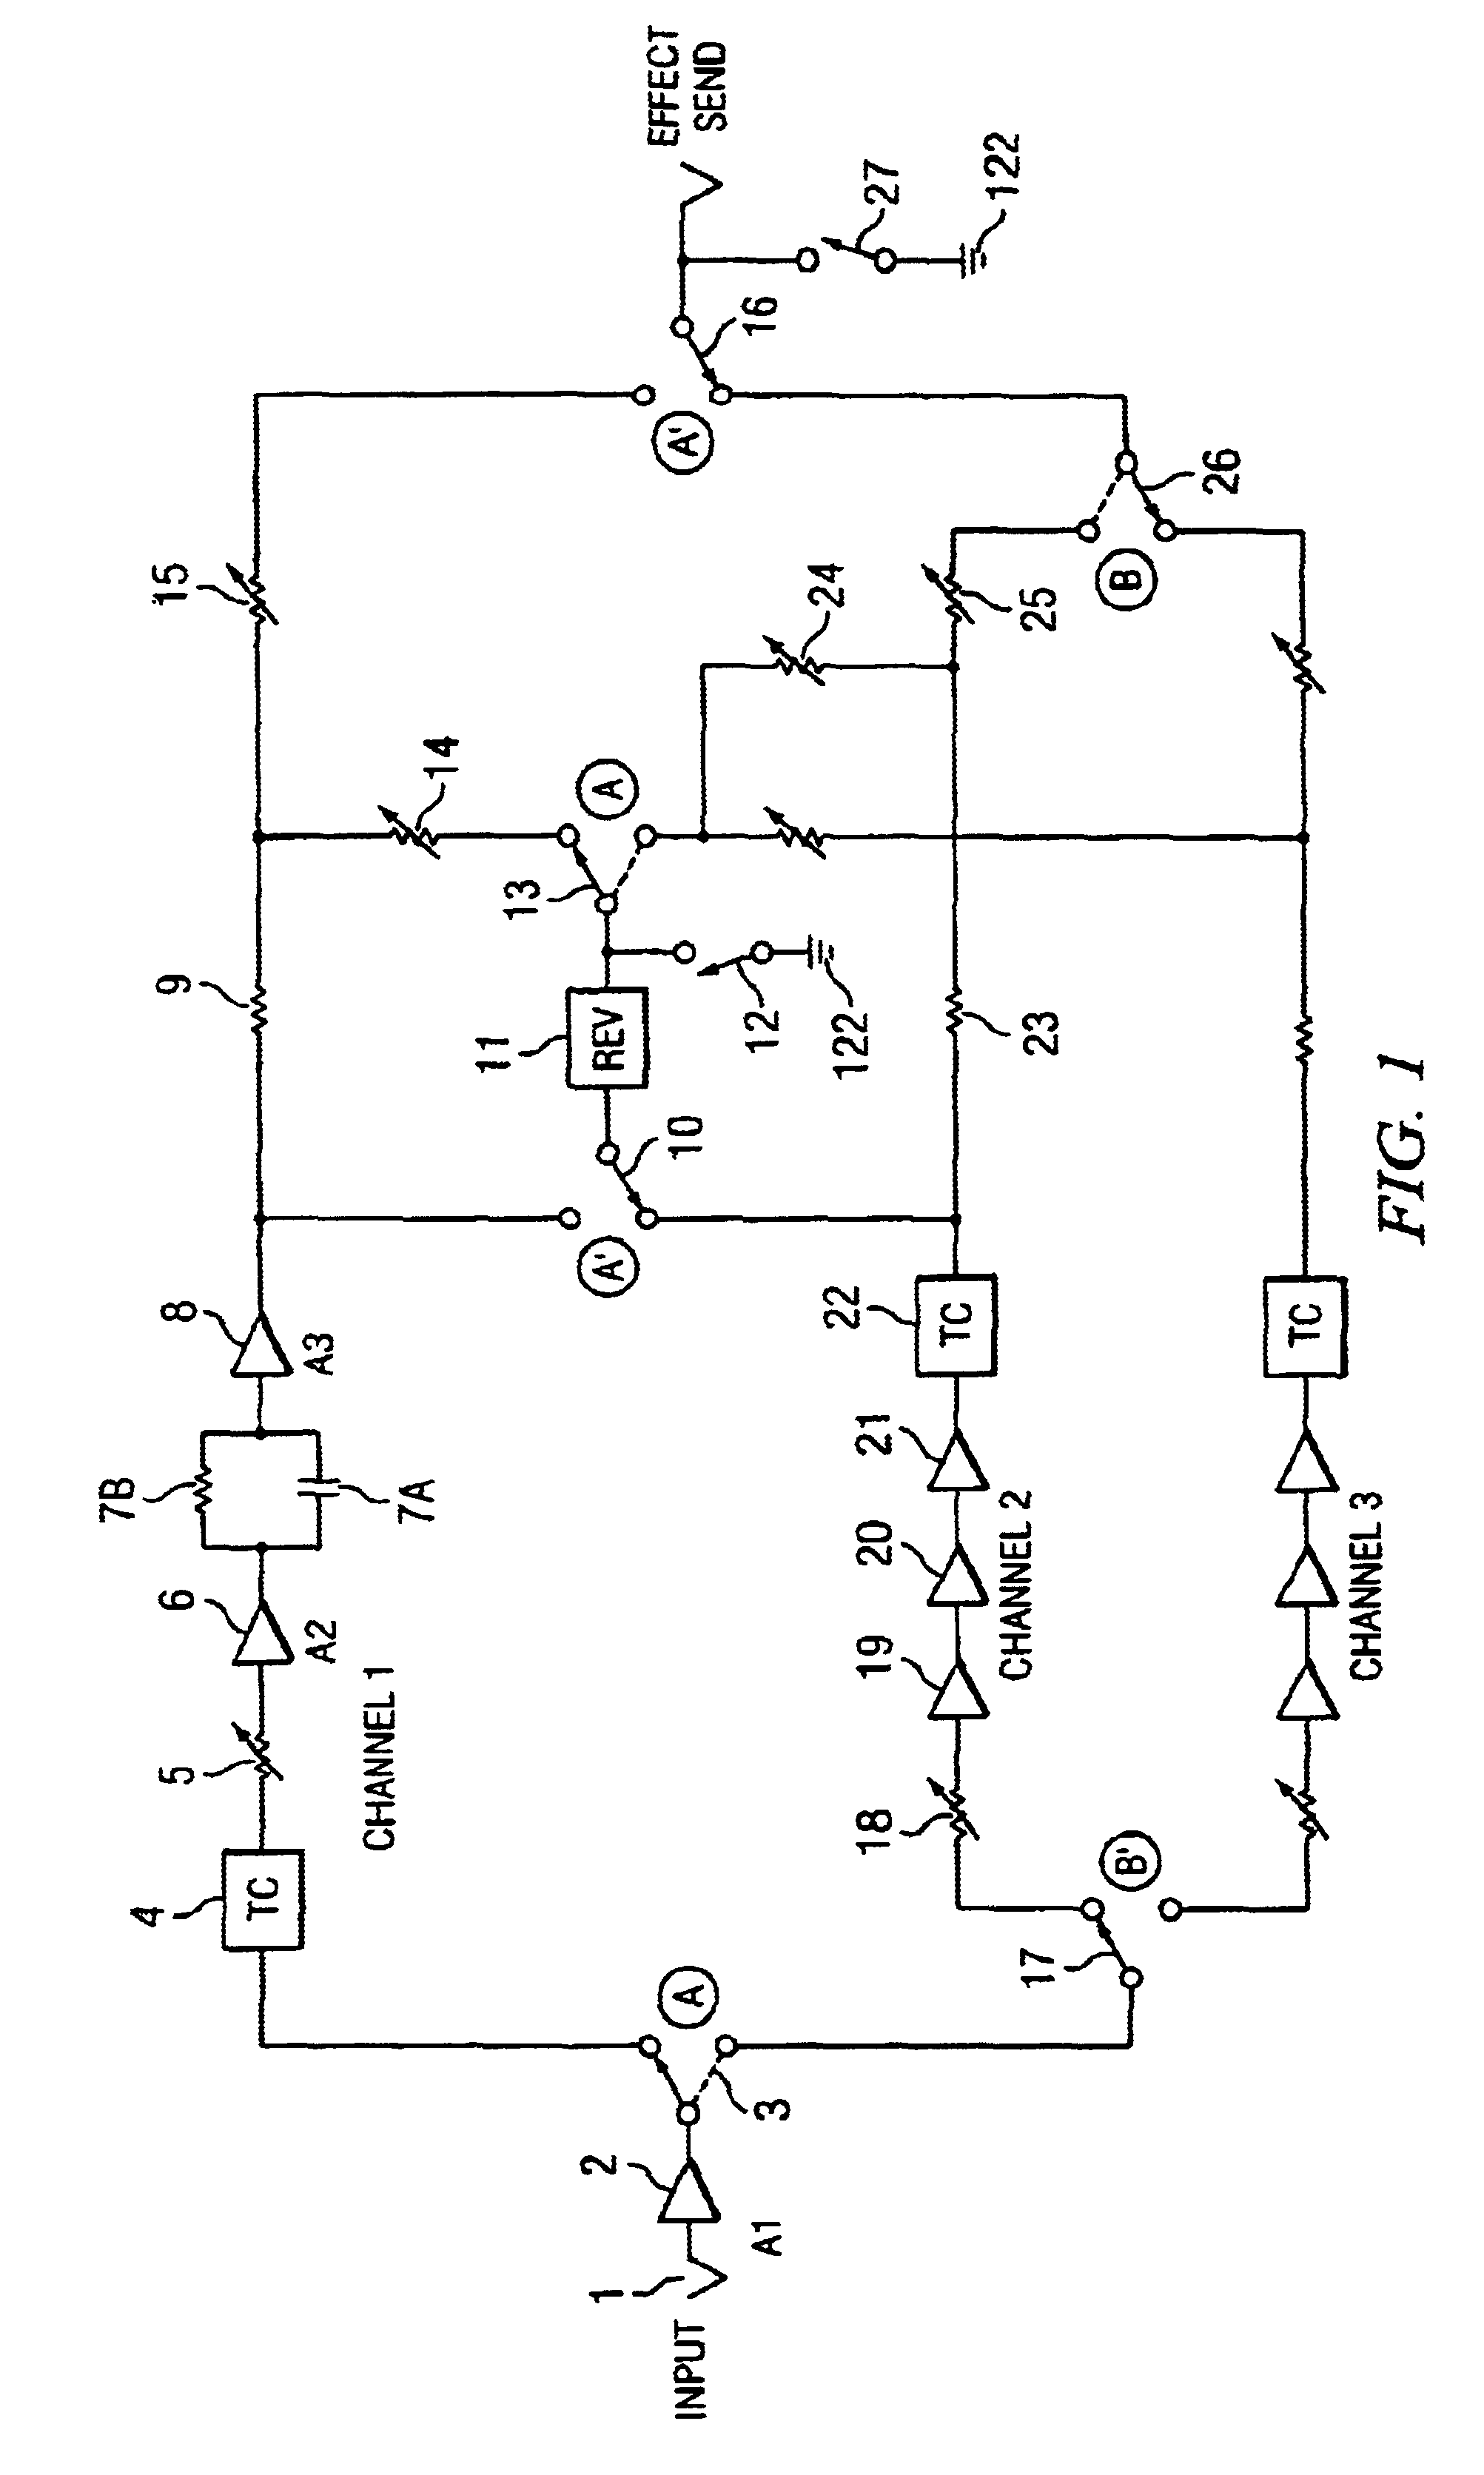 patent us6621907 - mute circuit for use with switching relays